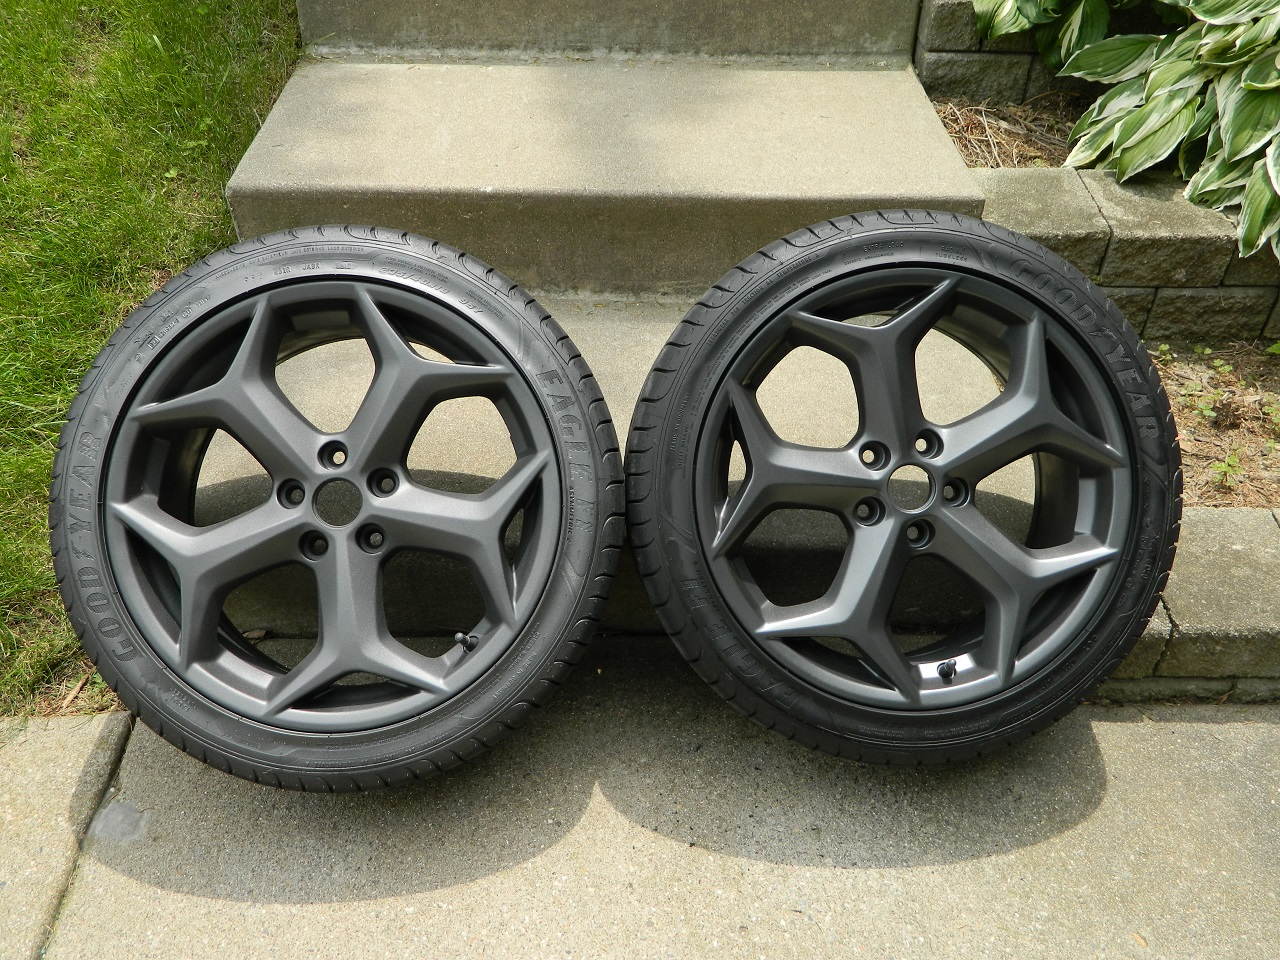 Plasti Dip Vs Spray Paint Rims